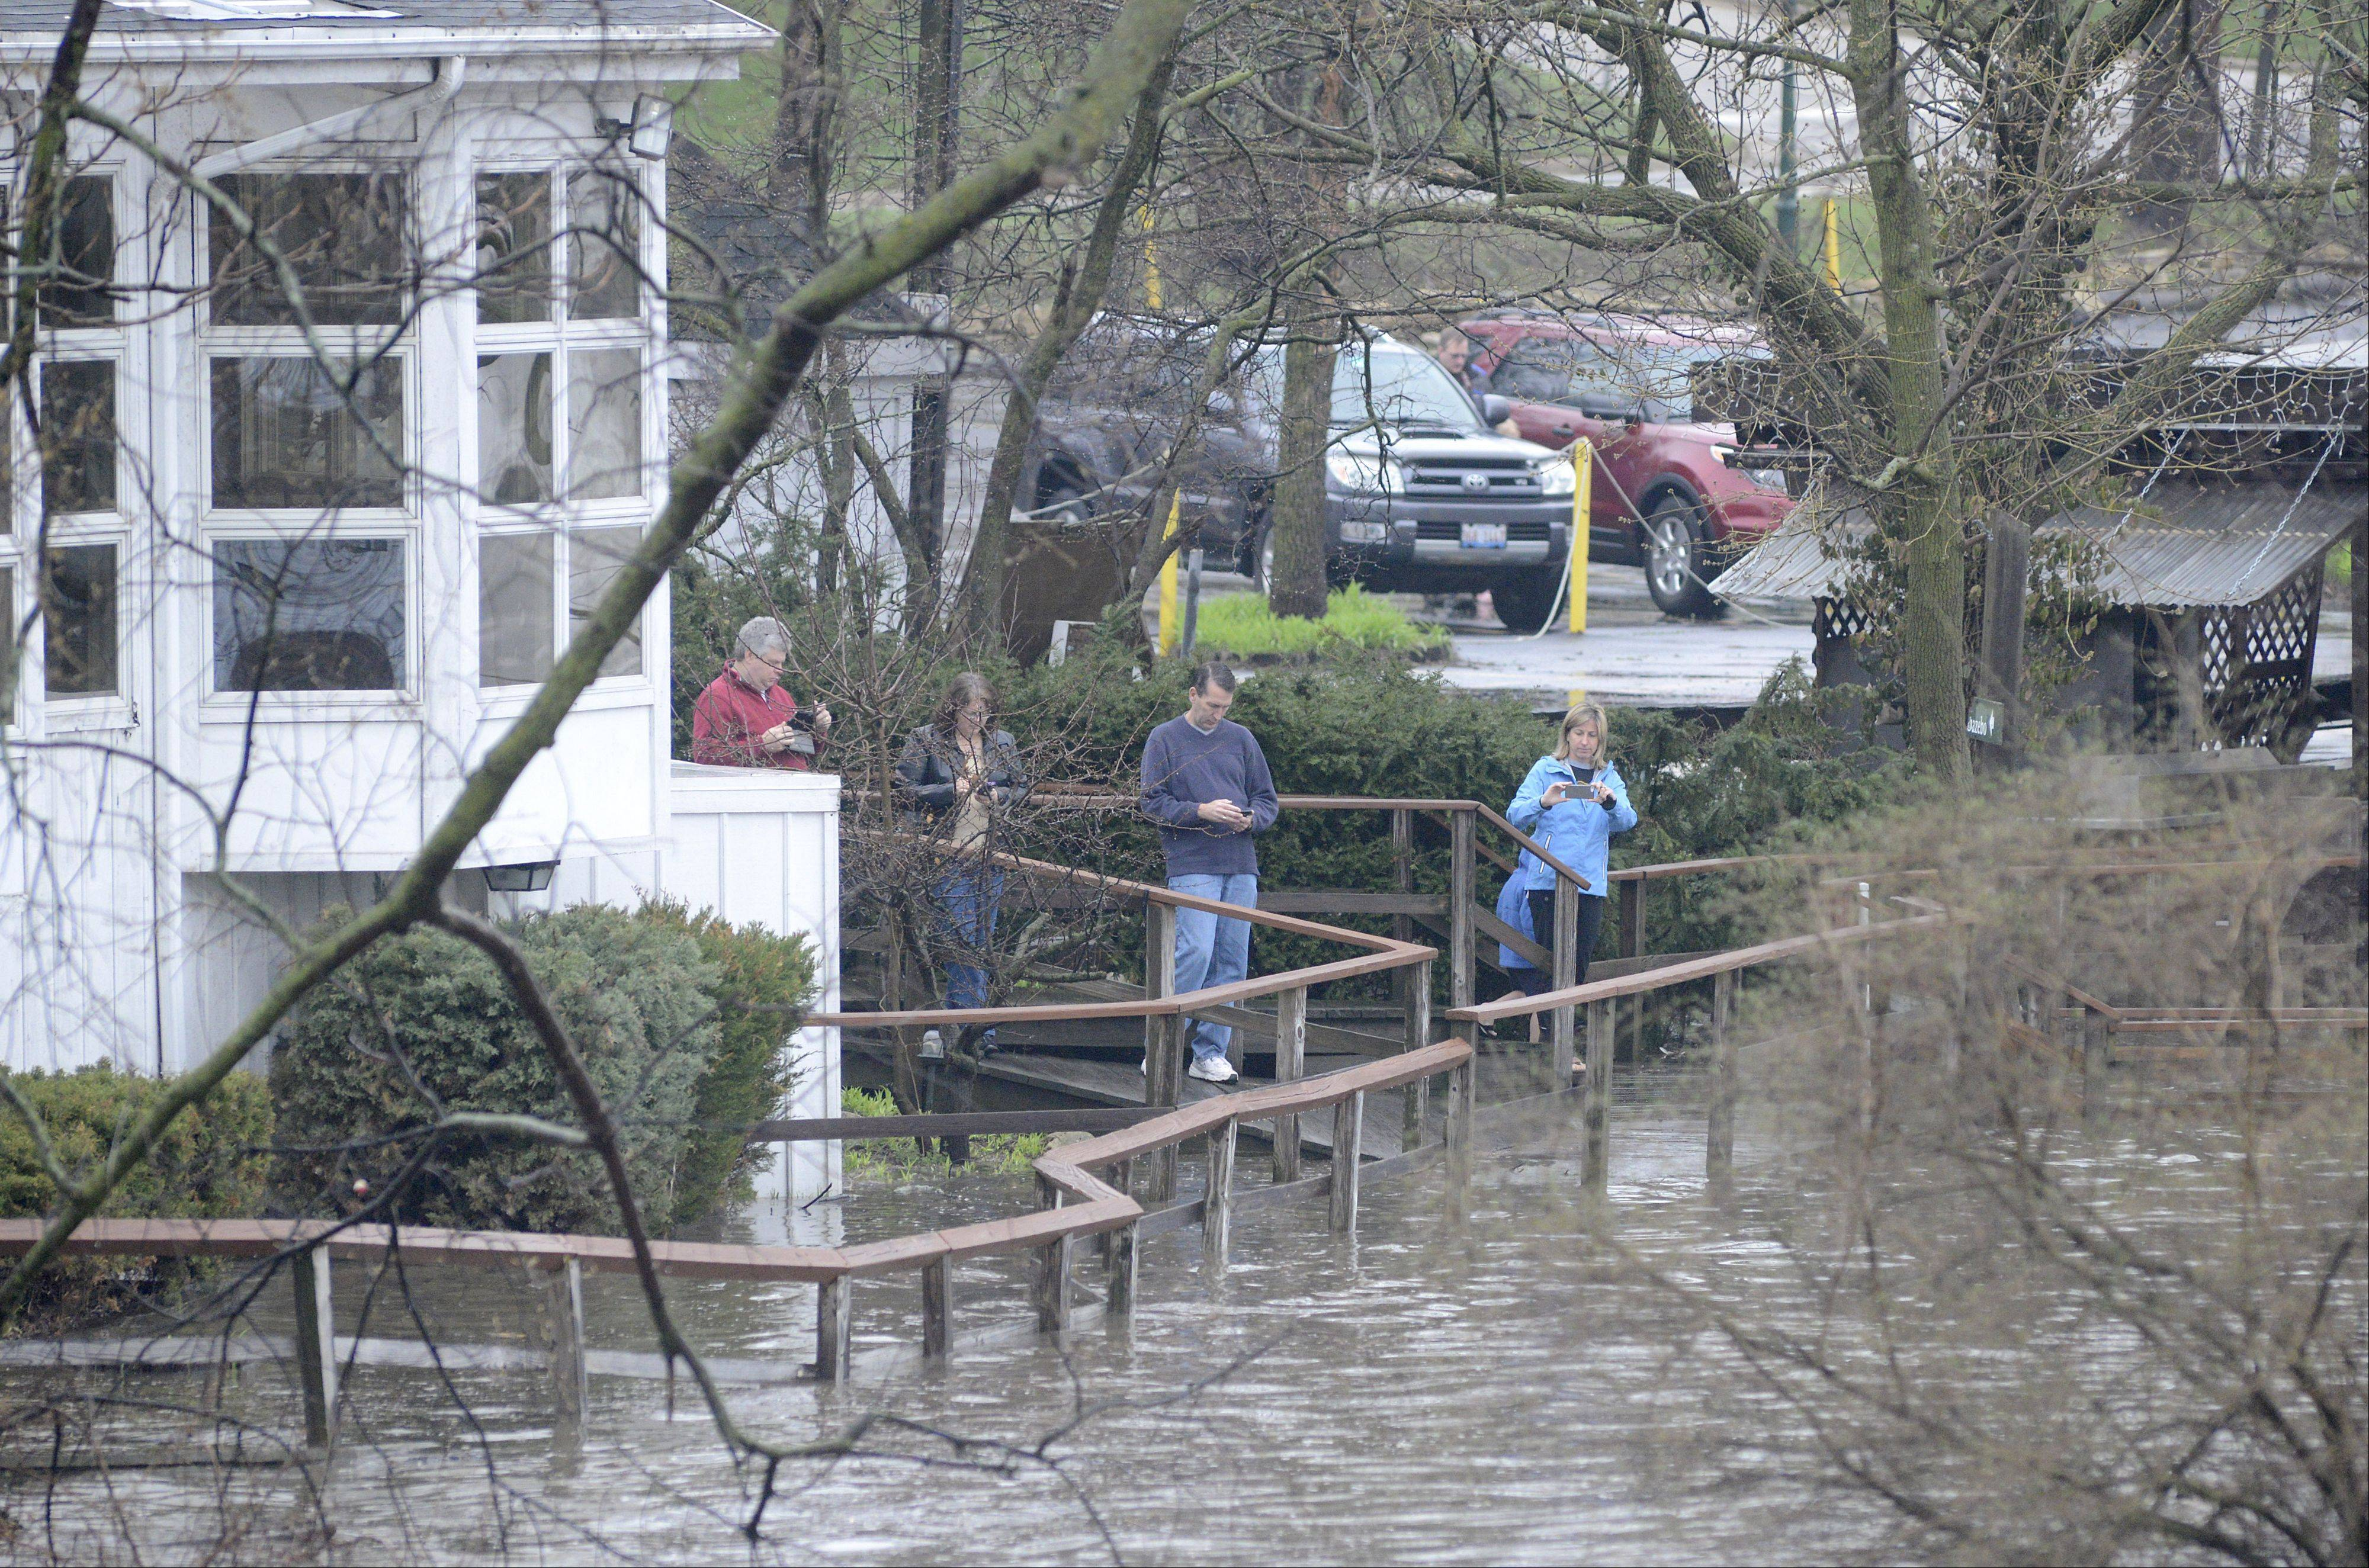 People gather on the boardwalk outside the shuttered Mill Race Inn next to Island Park in Geneva Thursday to photograph the floodwaters. A constant flow of cars went in and out of the parking lot to get a glimpse of the racing waters.